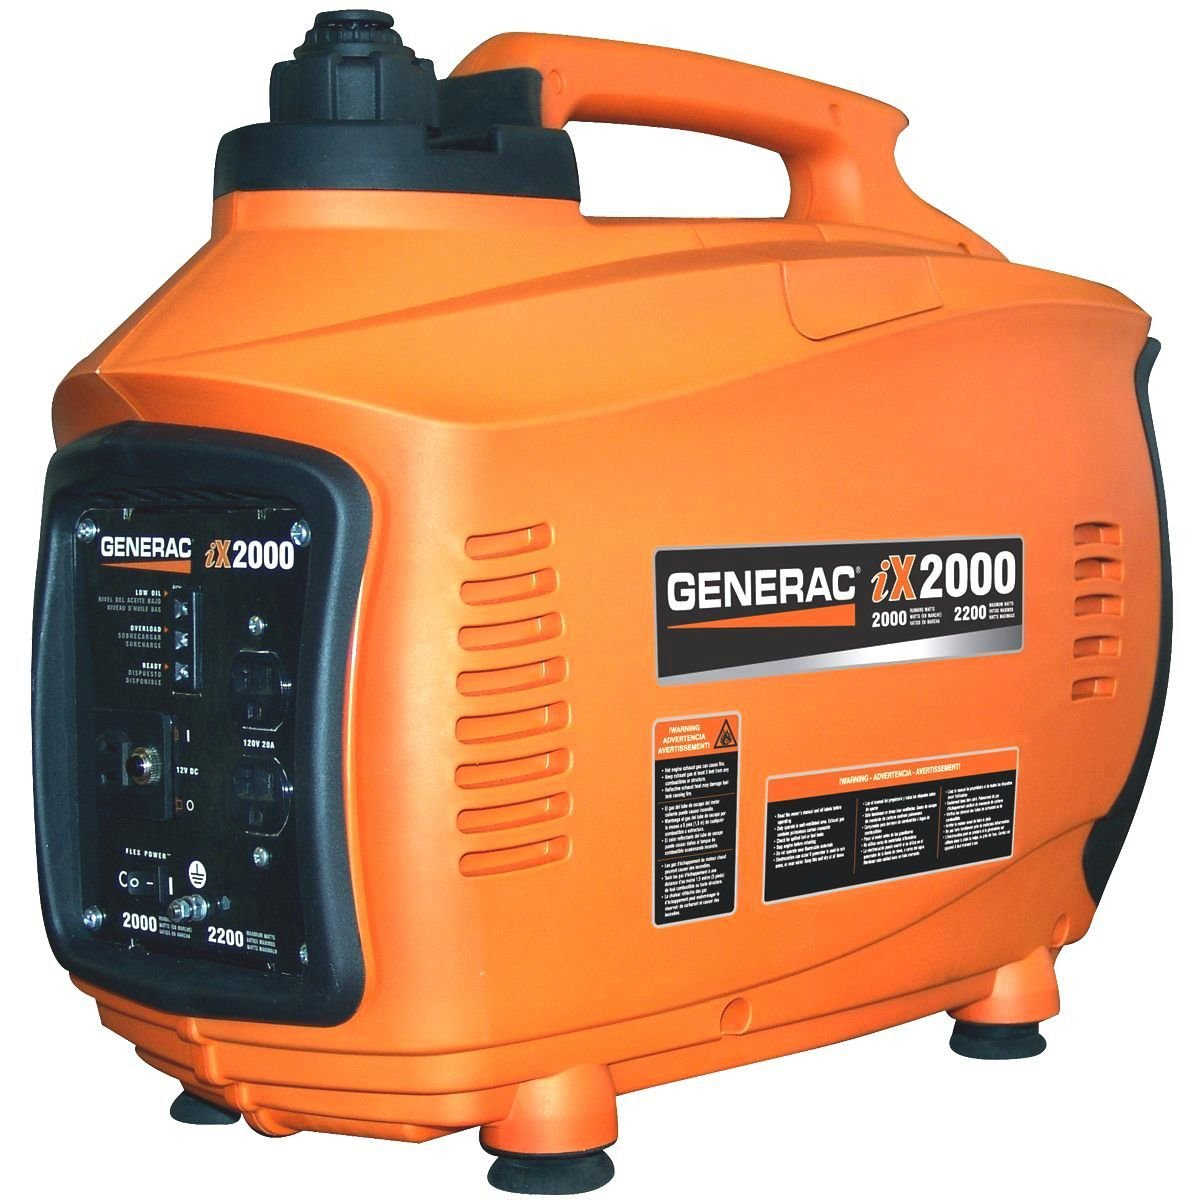 Generac iX Series 4-Stroke OHV Gas-Powered Portable Inverter Generator